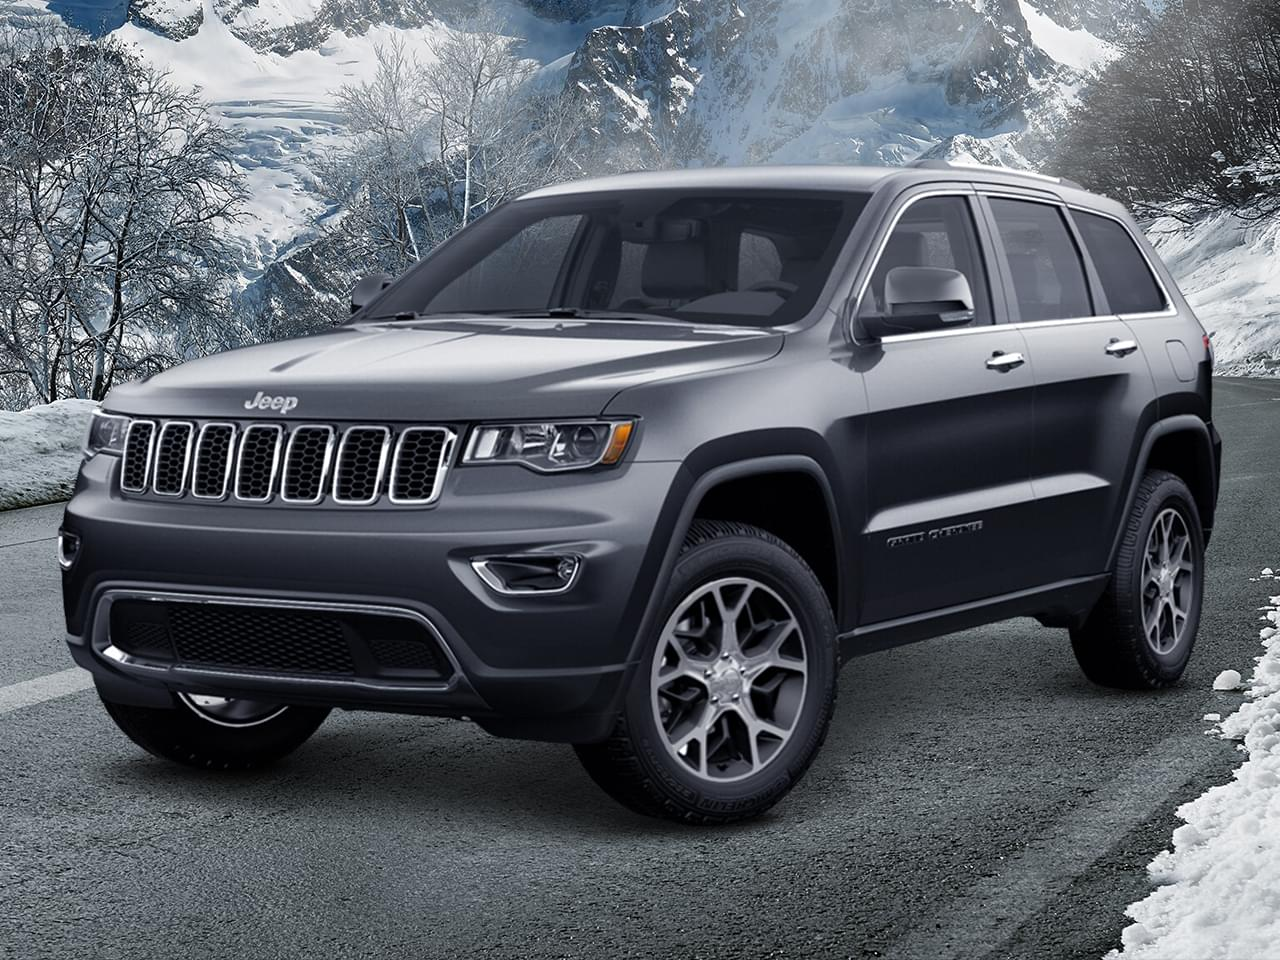 Jeep Grand Cherokee Overland 3.0l Diesel V6 250PS